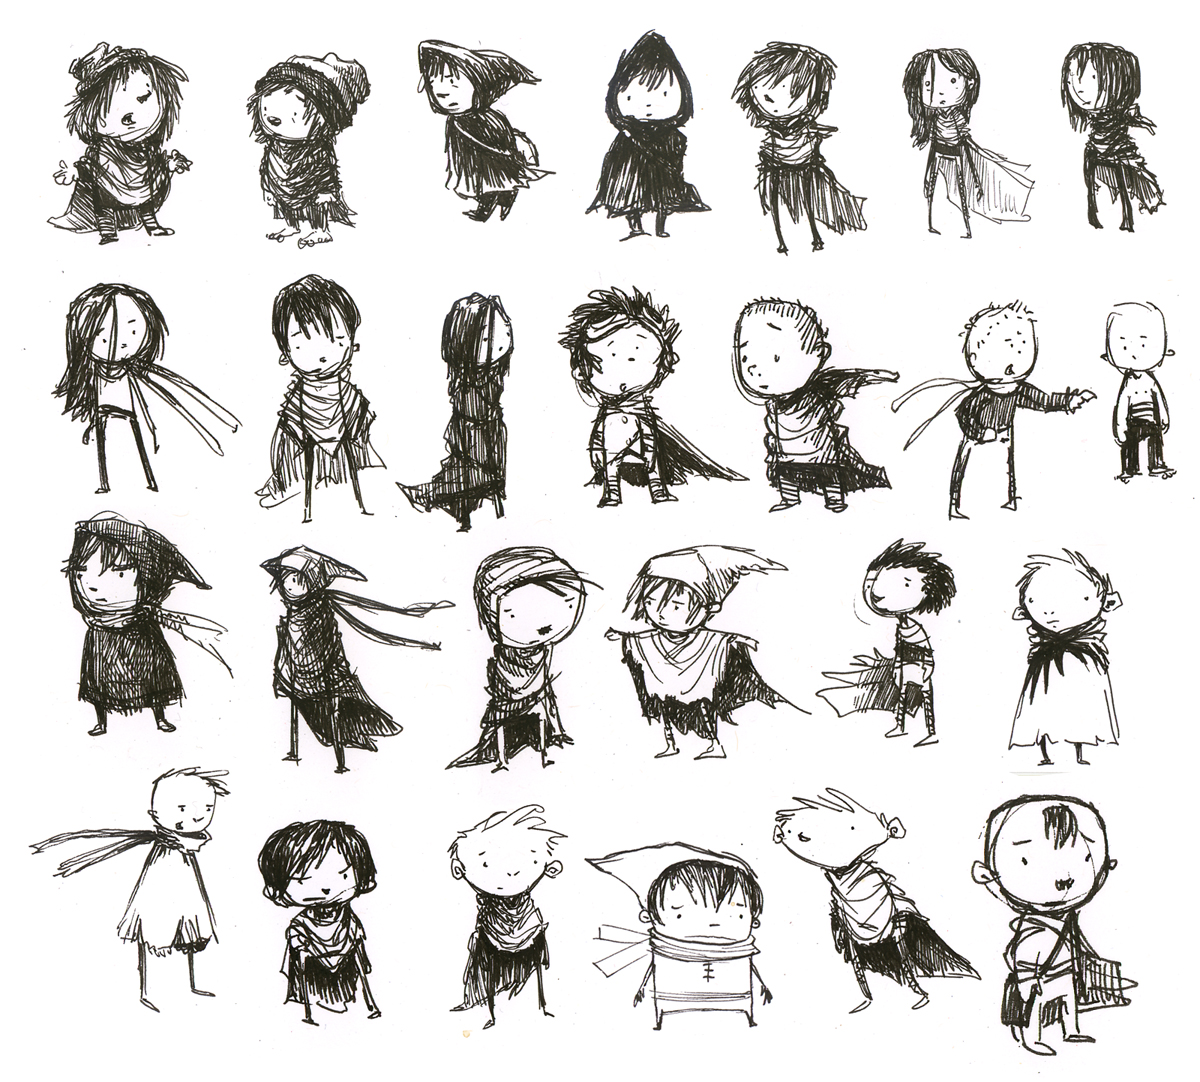 Some exploratory sketches of the lonely boy made during the development of sand